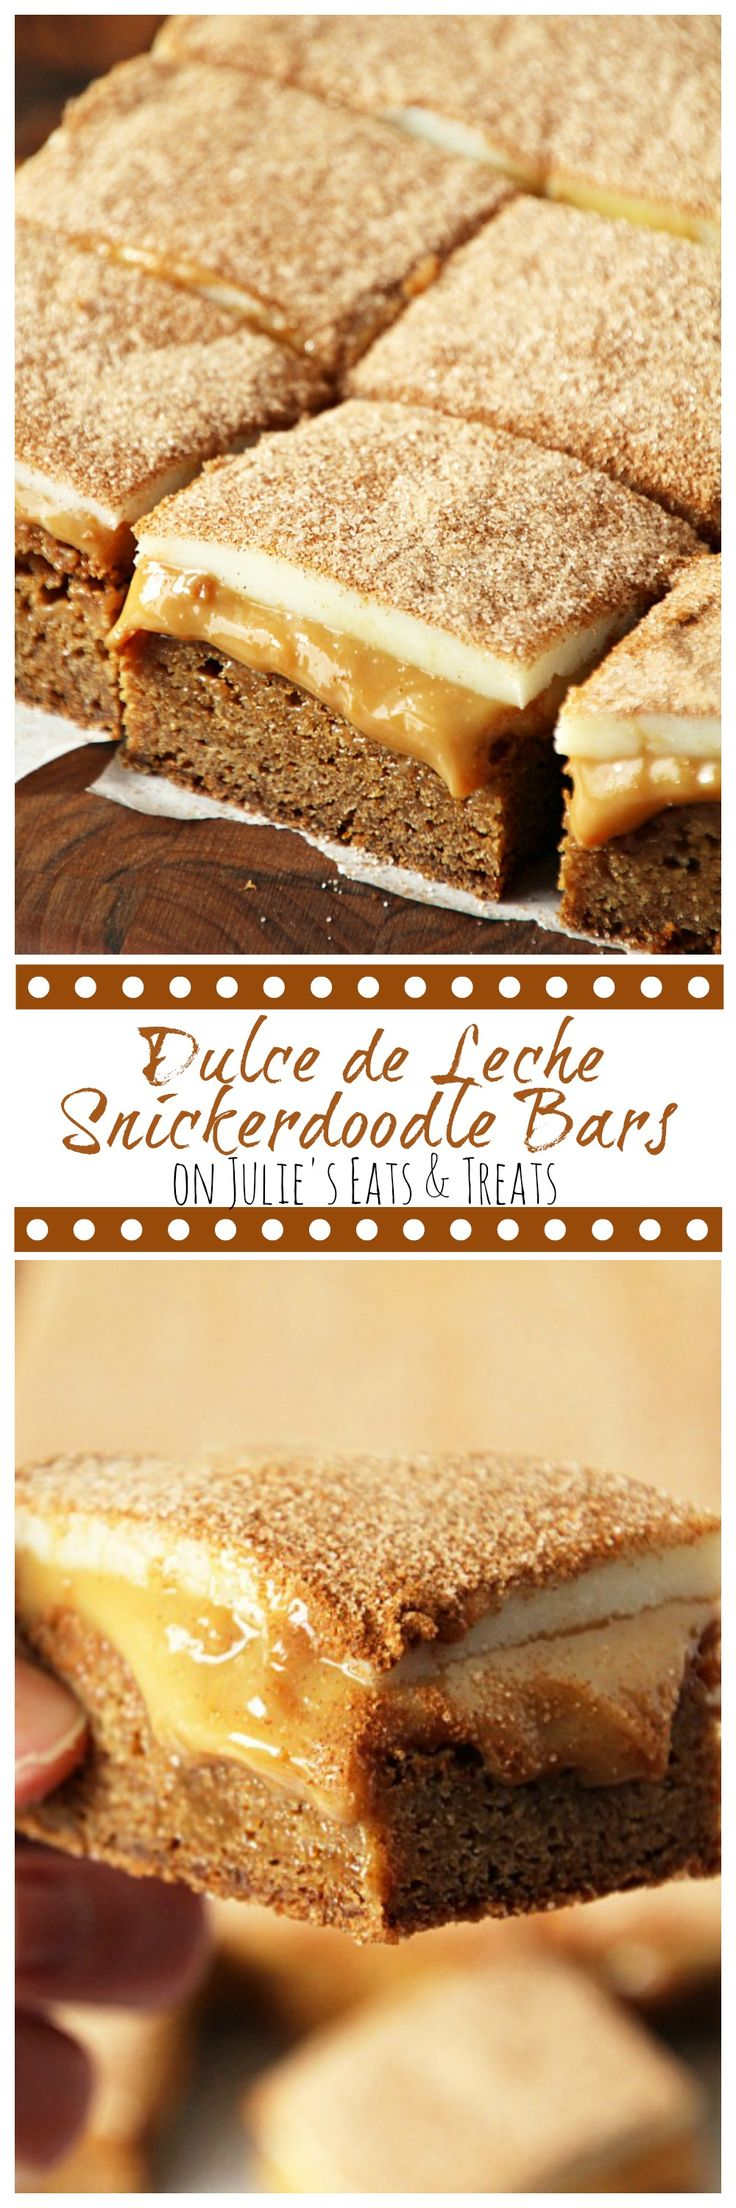 Dulce de Leche Snickerdoodle Bars ~ Chewy Snickerdoodle Crust topped with a Layer of Dulce de Leche and then White Chocolate and Cinnamon Sugar! ~ http://www.julieseatsandtreats.com